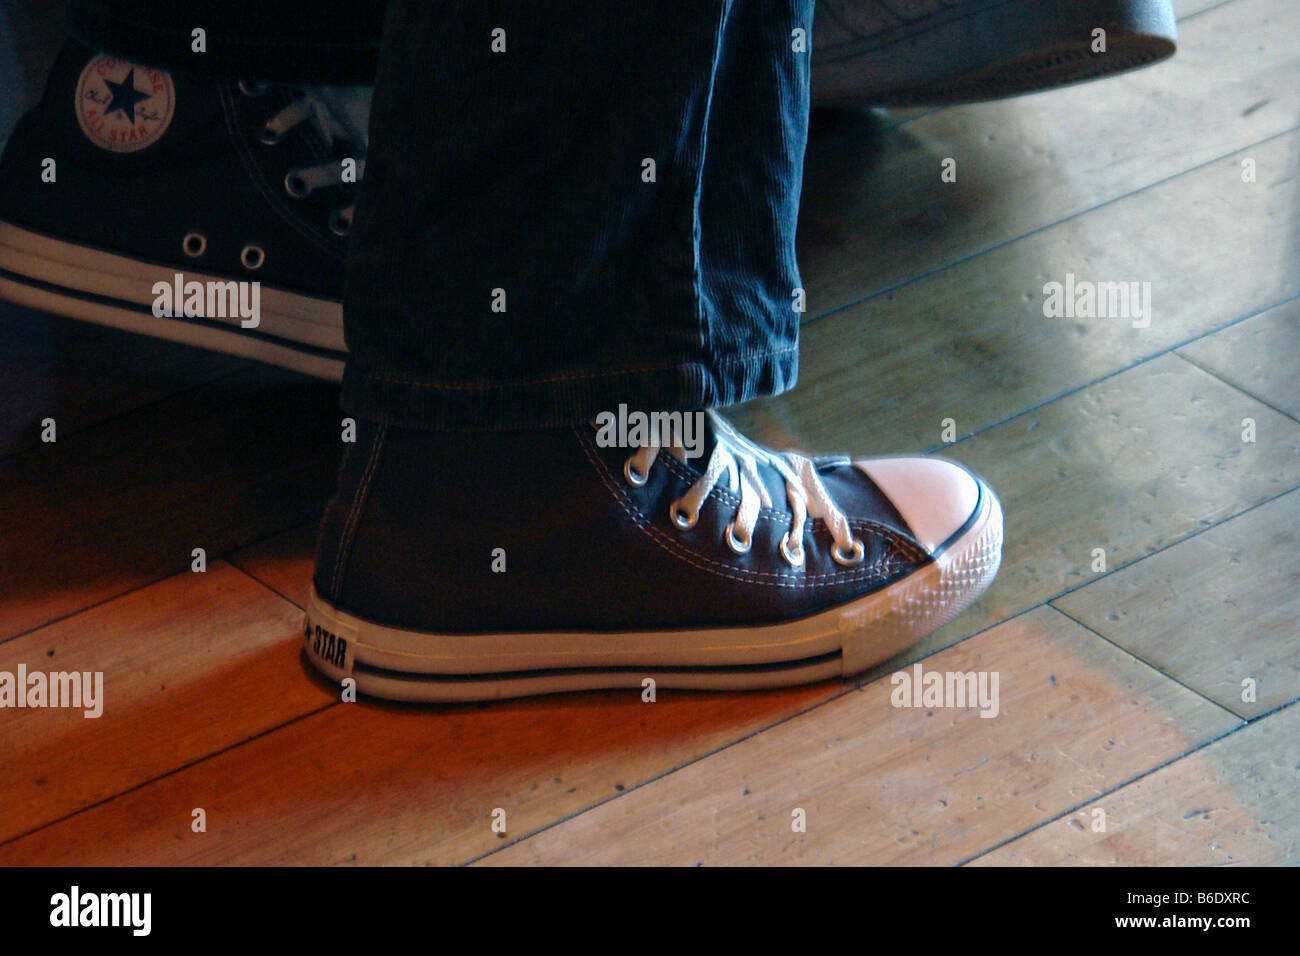 0f08d9f5cb6 Indoor Scene of a Person s Feet Wearing Black Converse Chuck Taylor High  Top Basketball Sneakers and